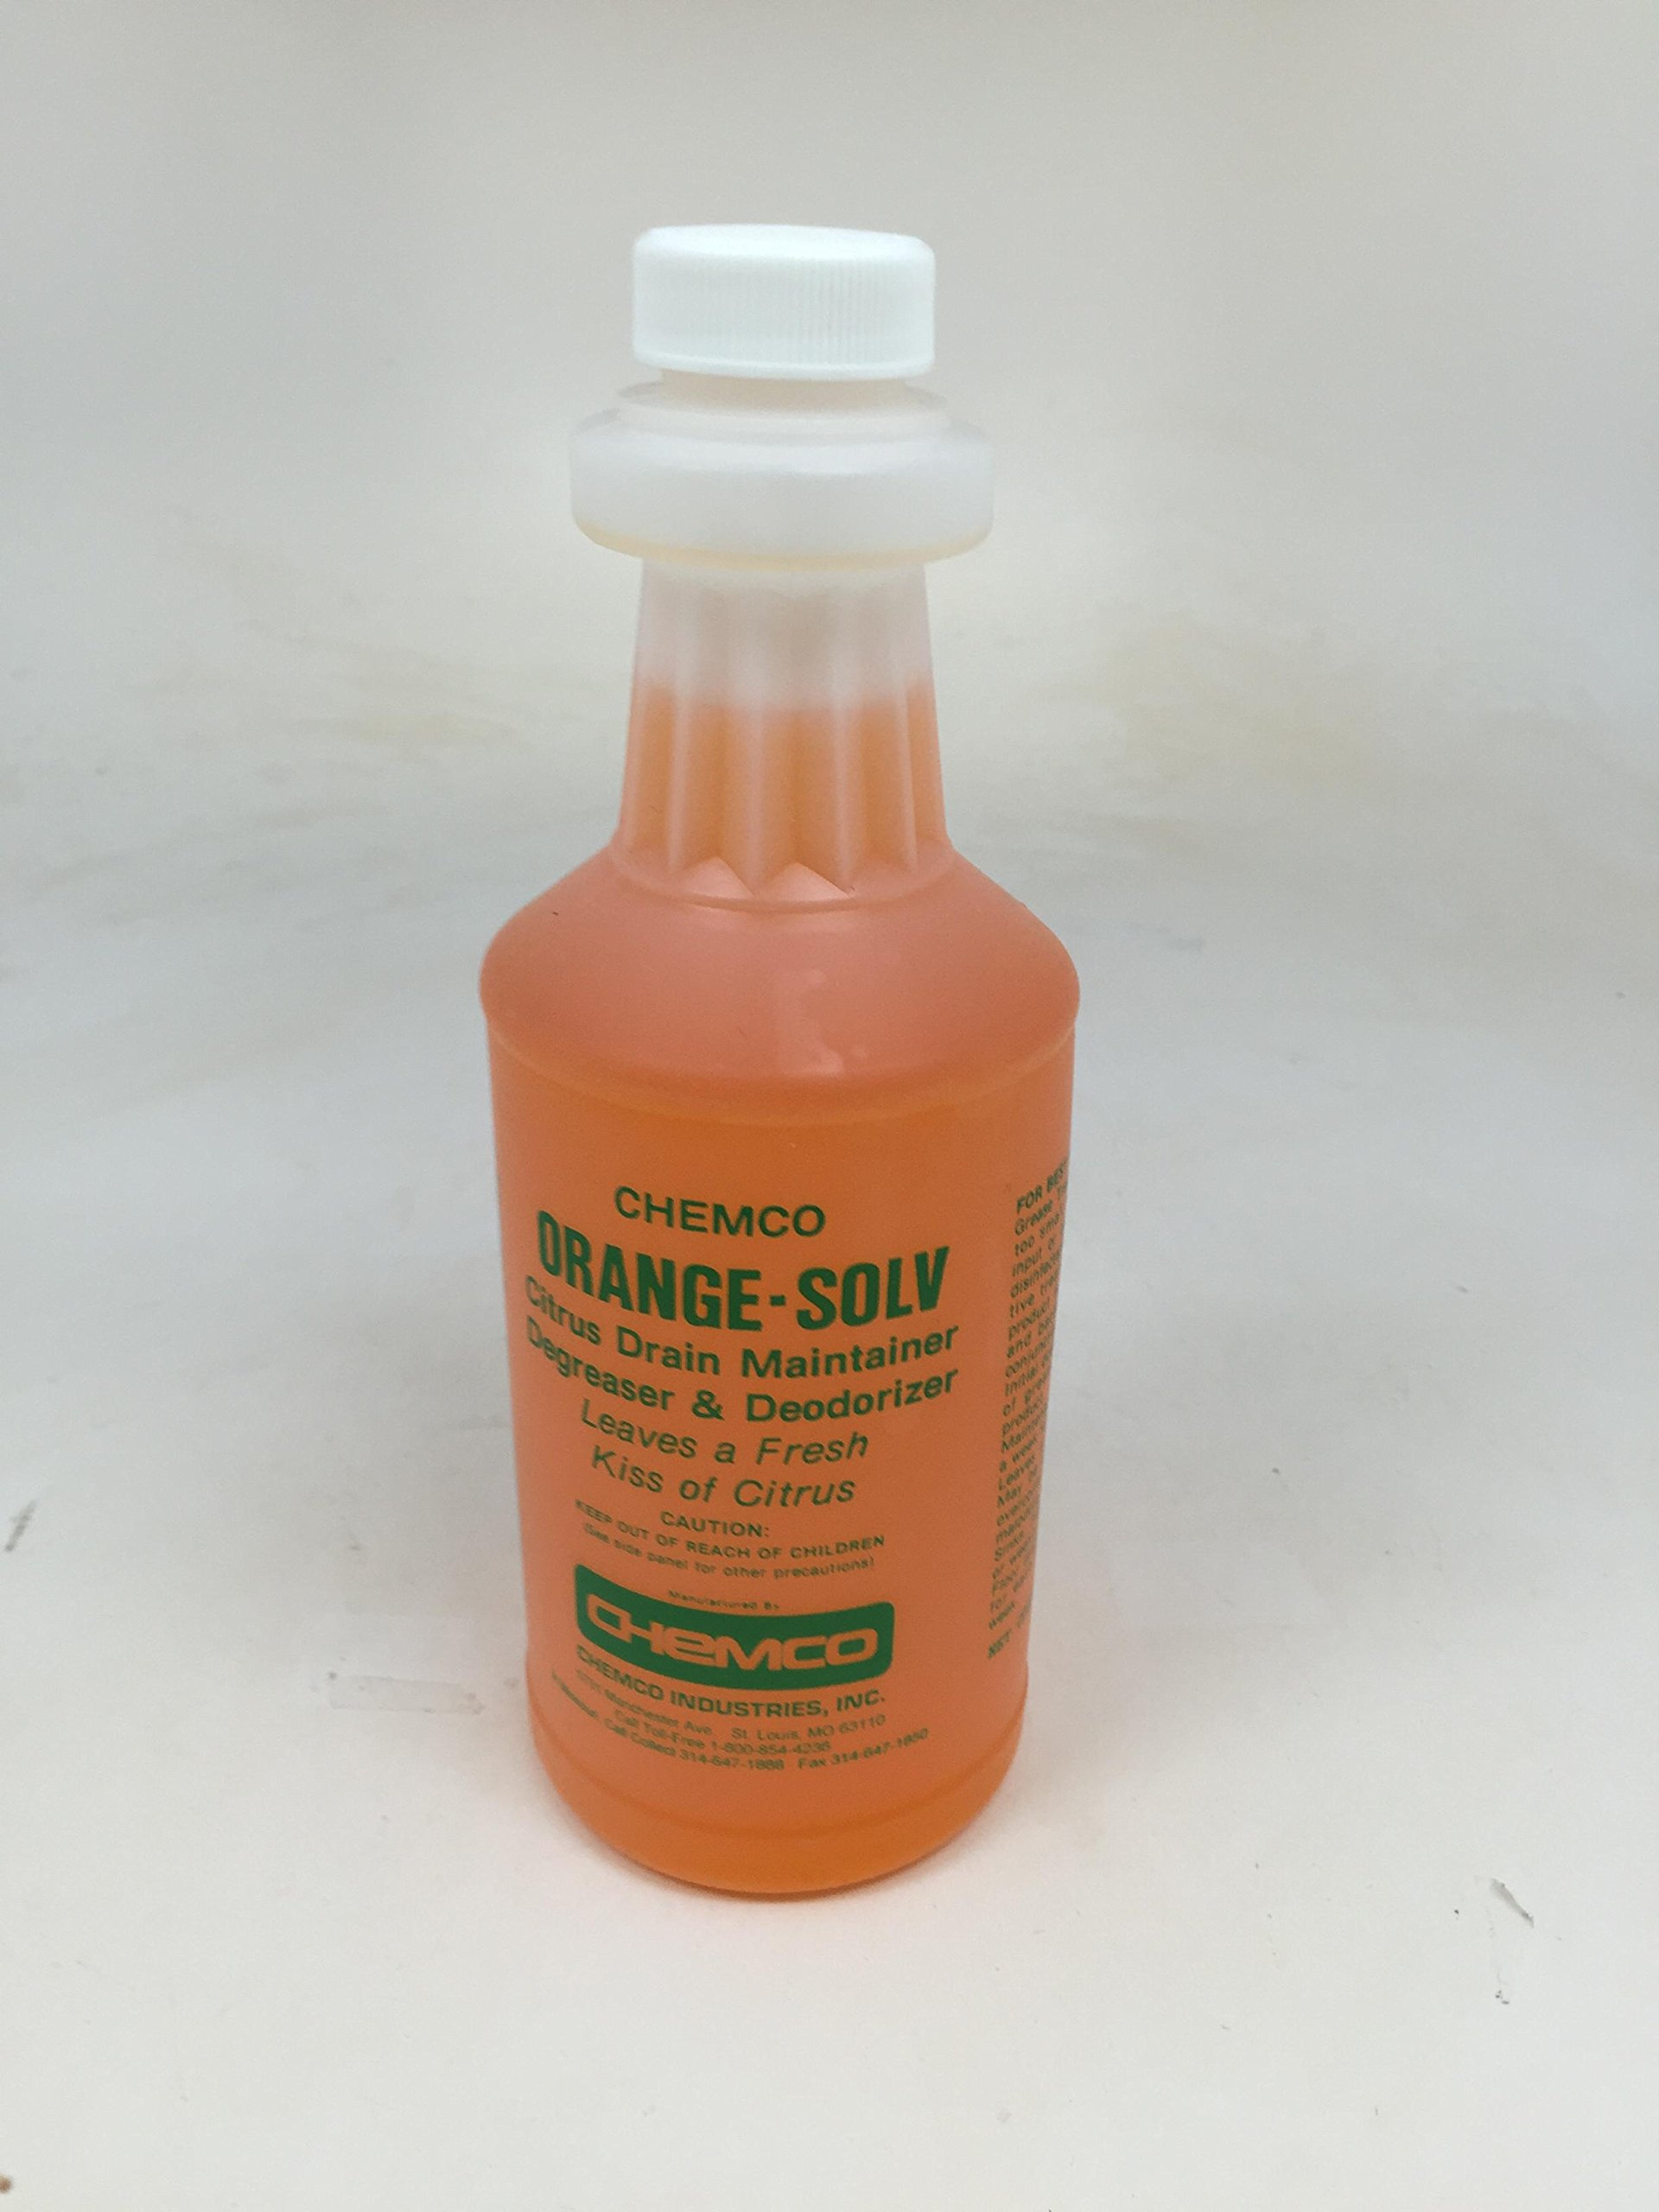 Orange Solv Special, Citrus Based Drain Maintainer, 12 pints per case by Chemco Industries